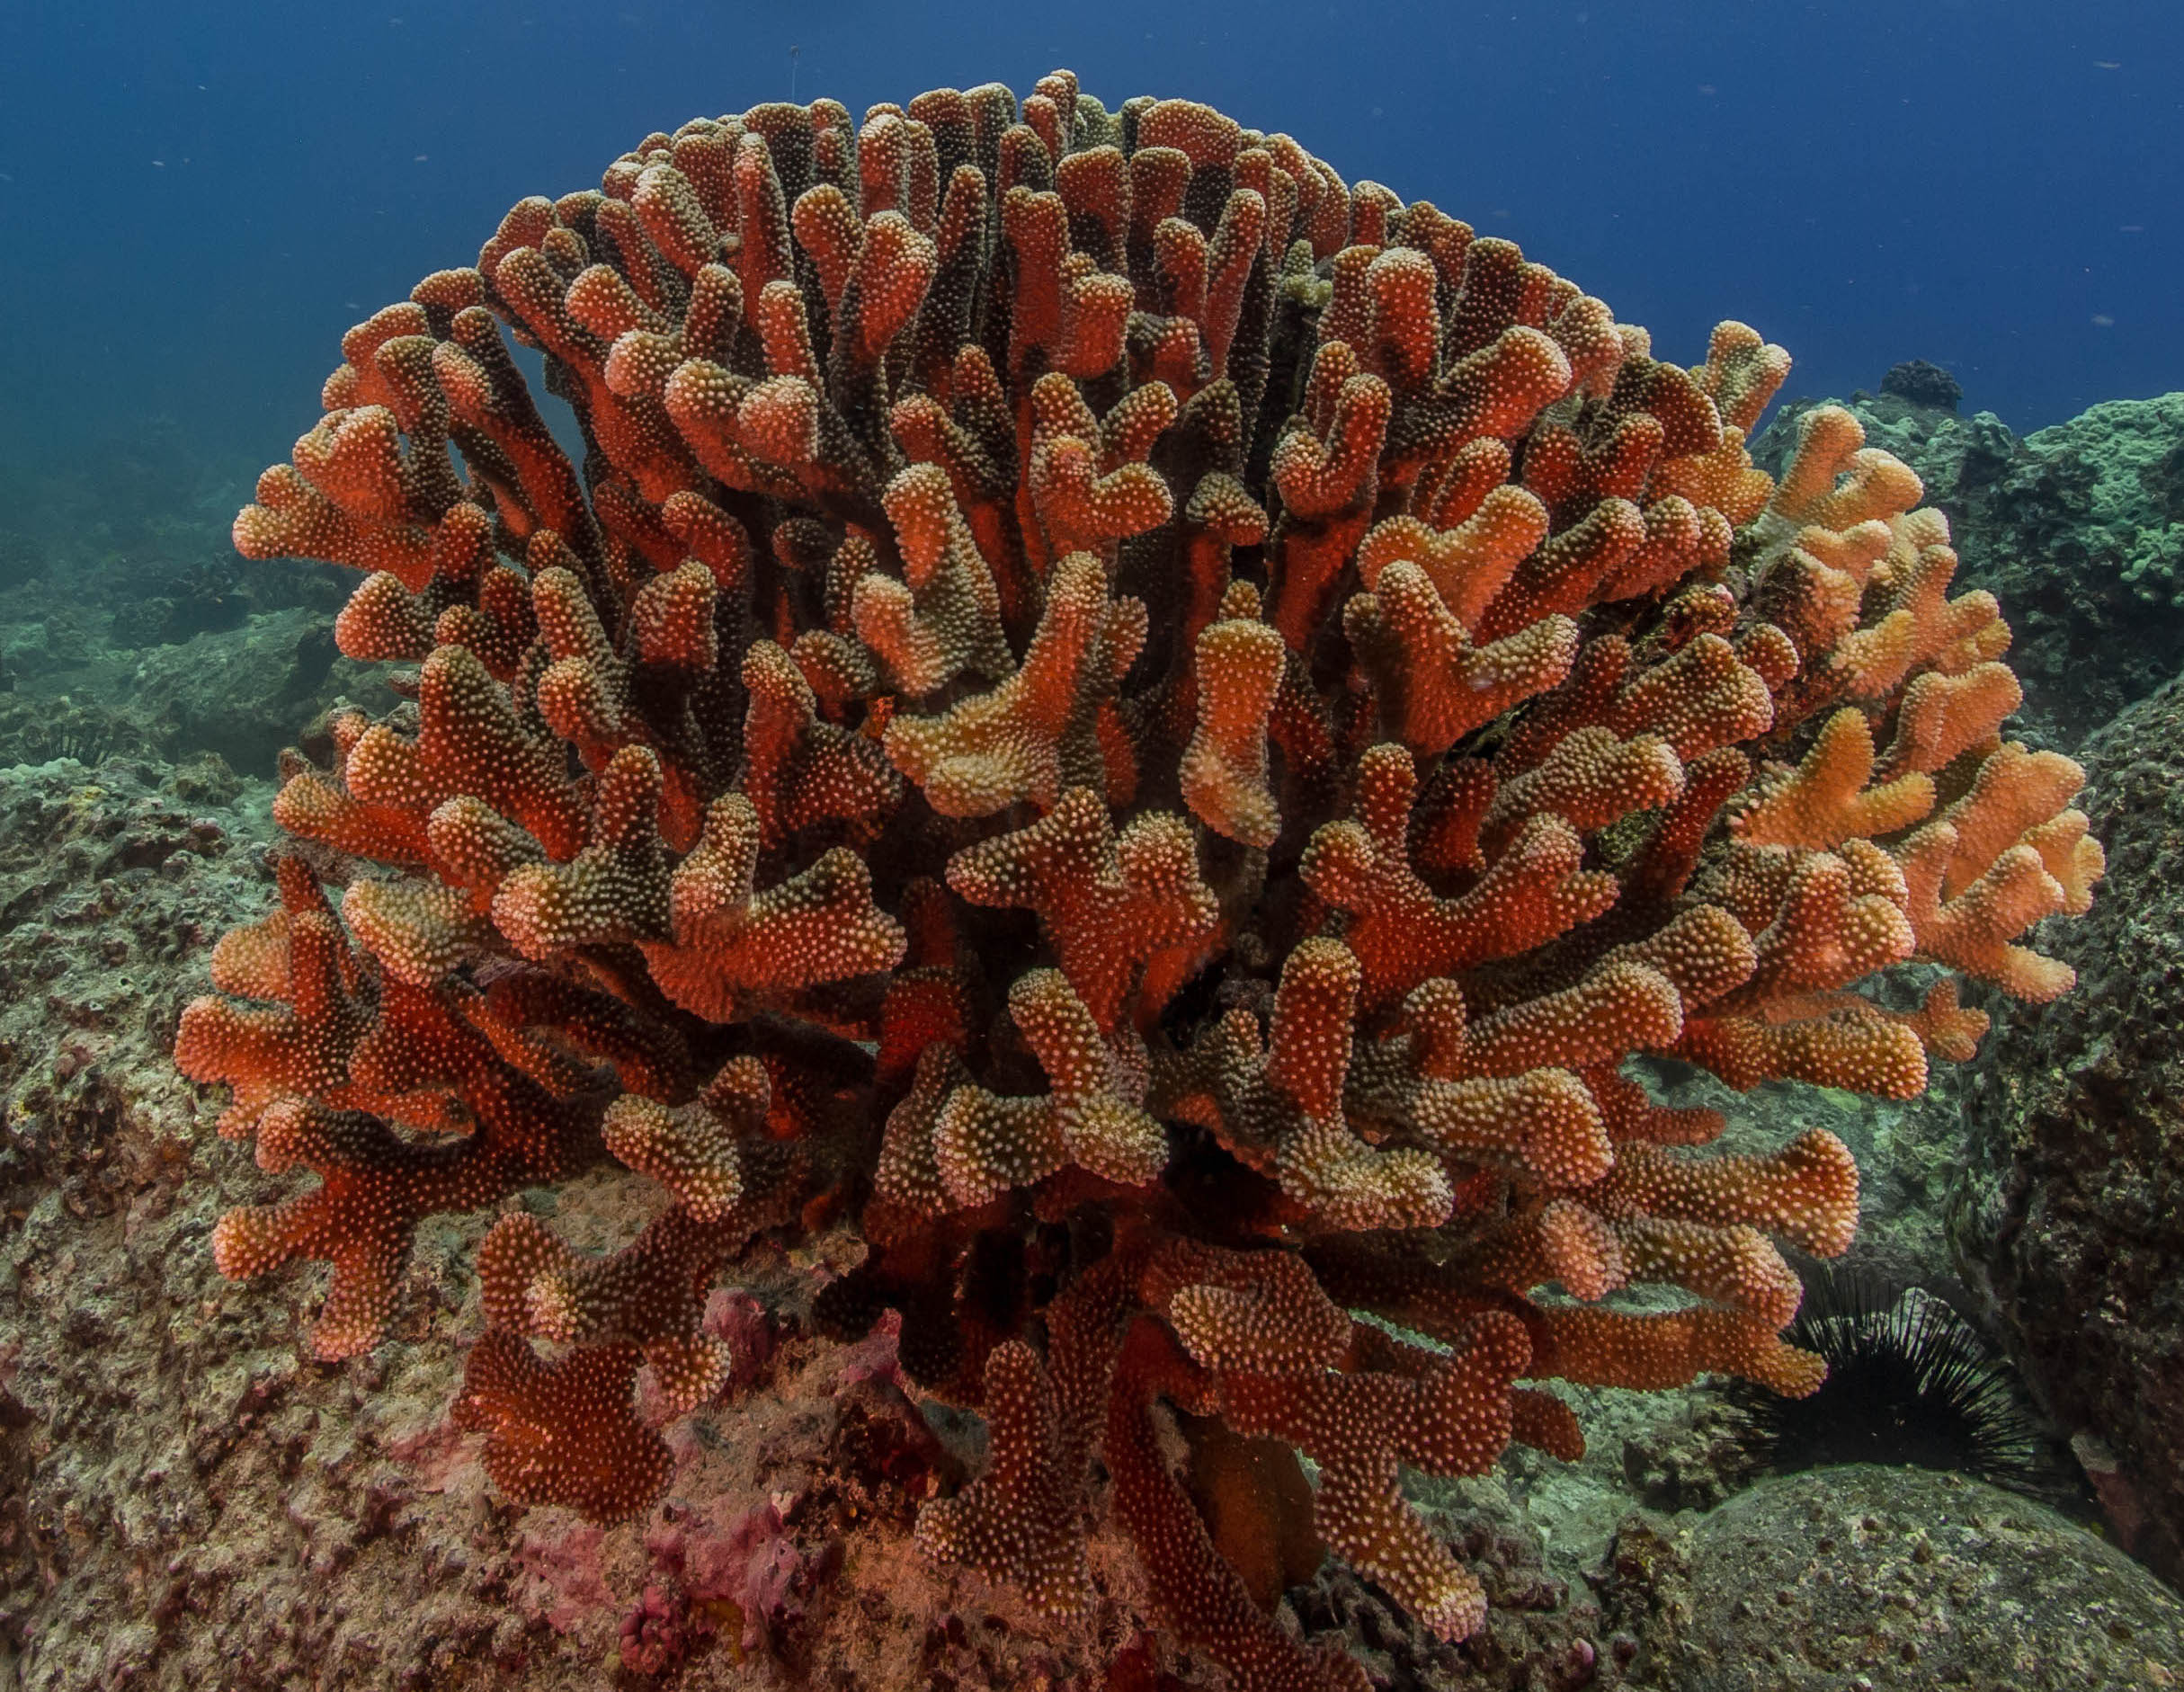 Picture Credit: Shaun Wolfe / Coral Reef Image Bank